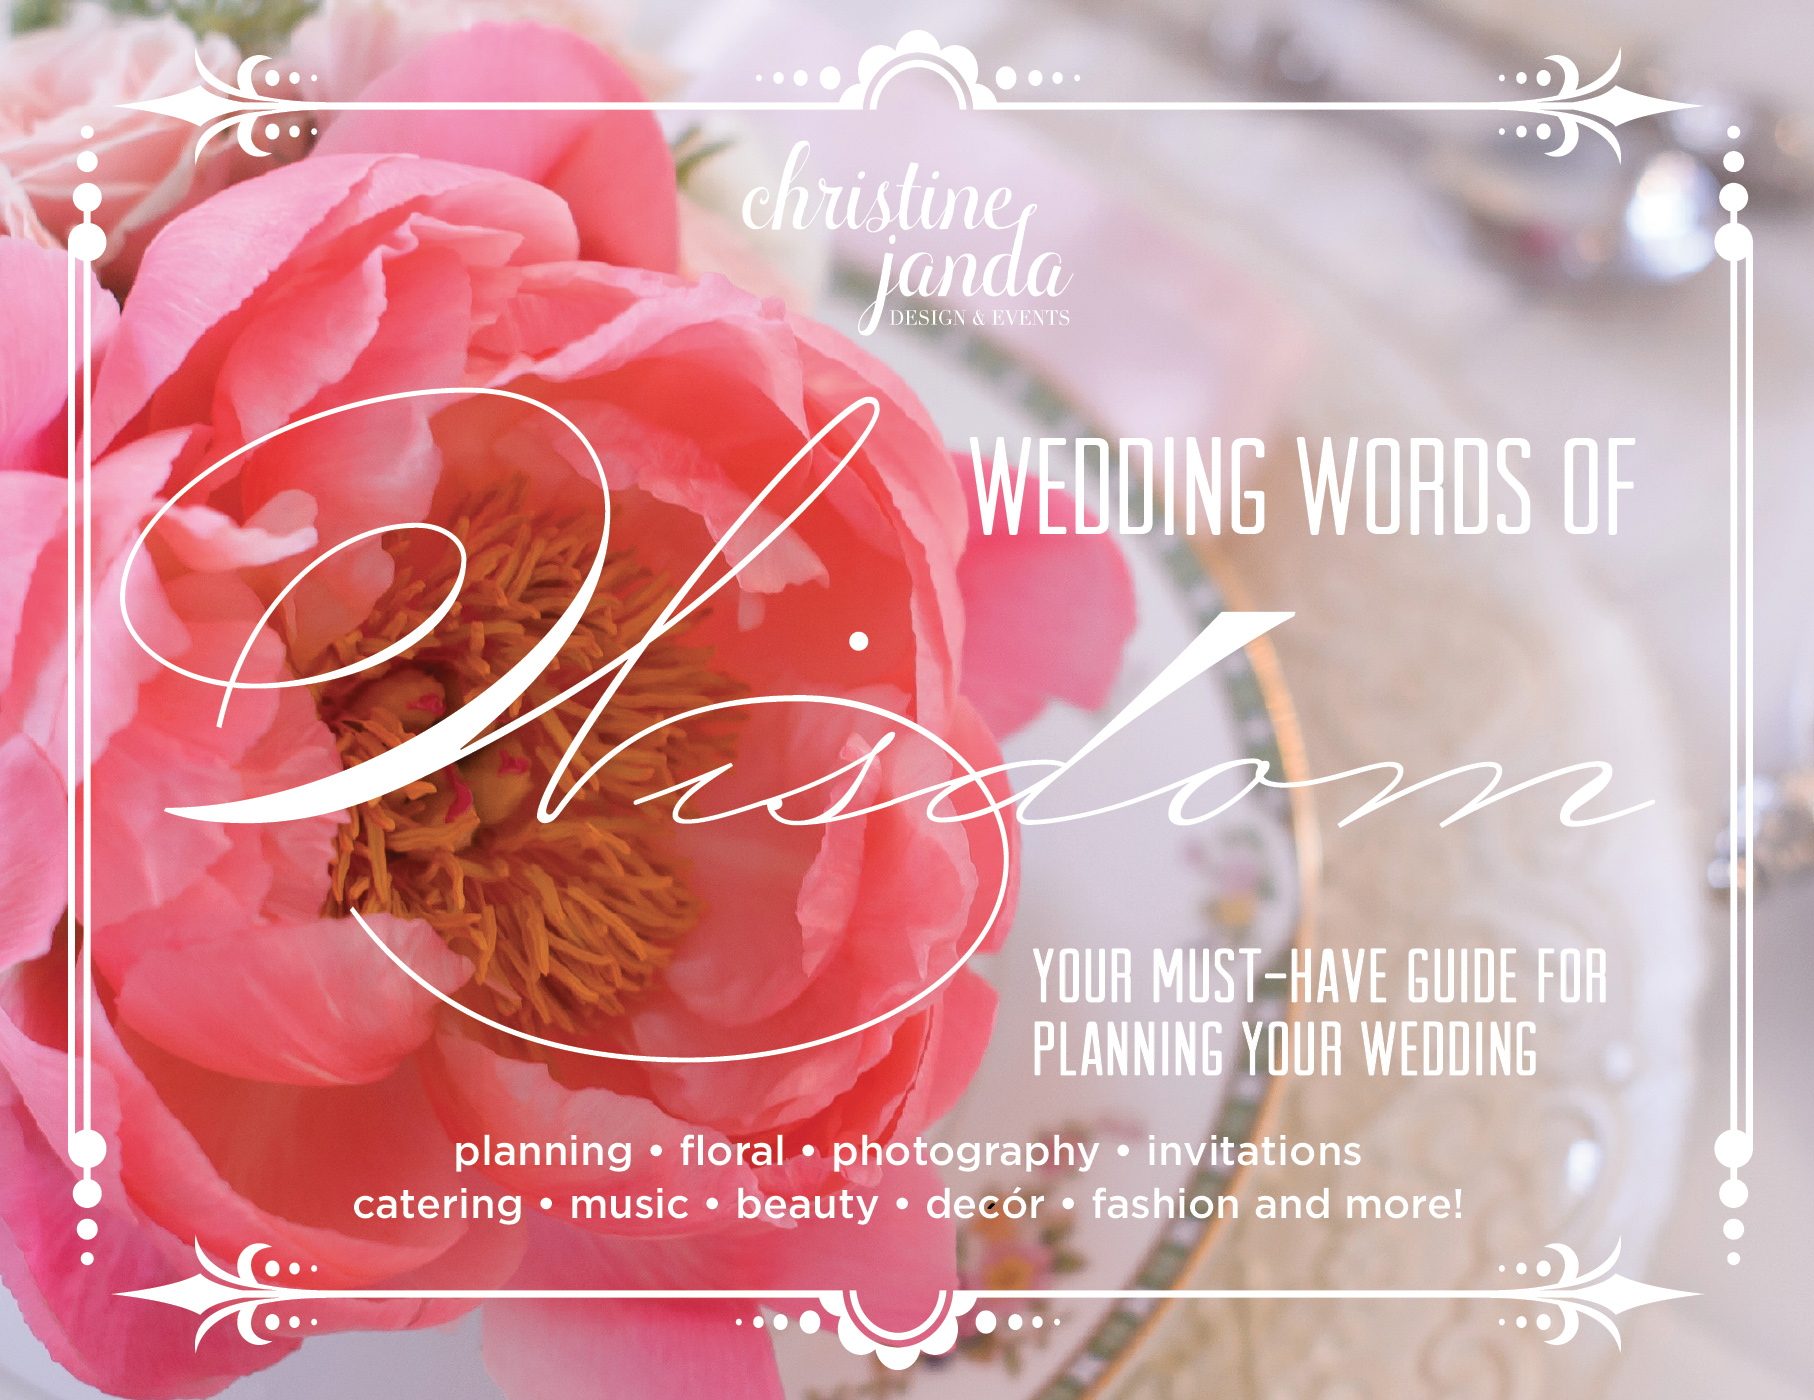 Wedding Words of Wisdom Cover